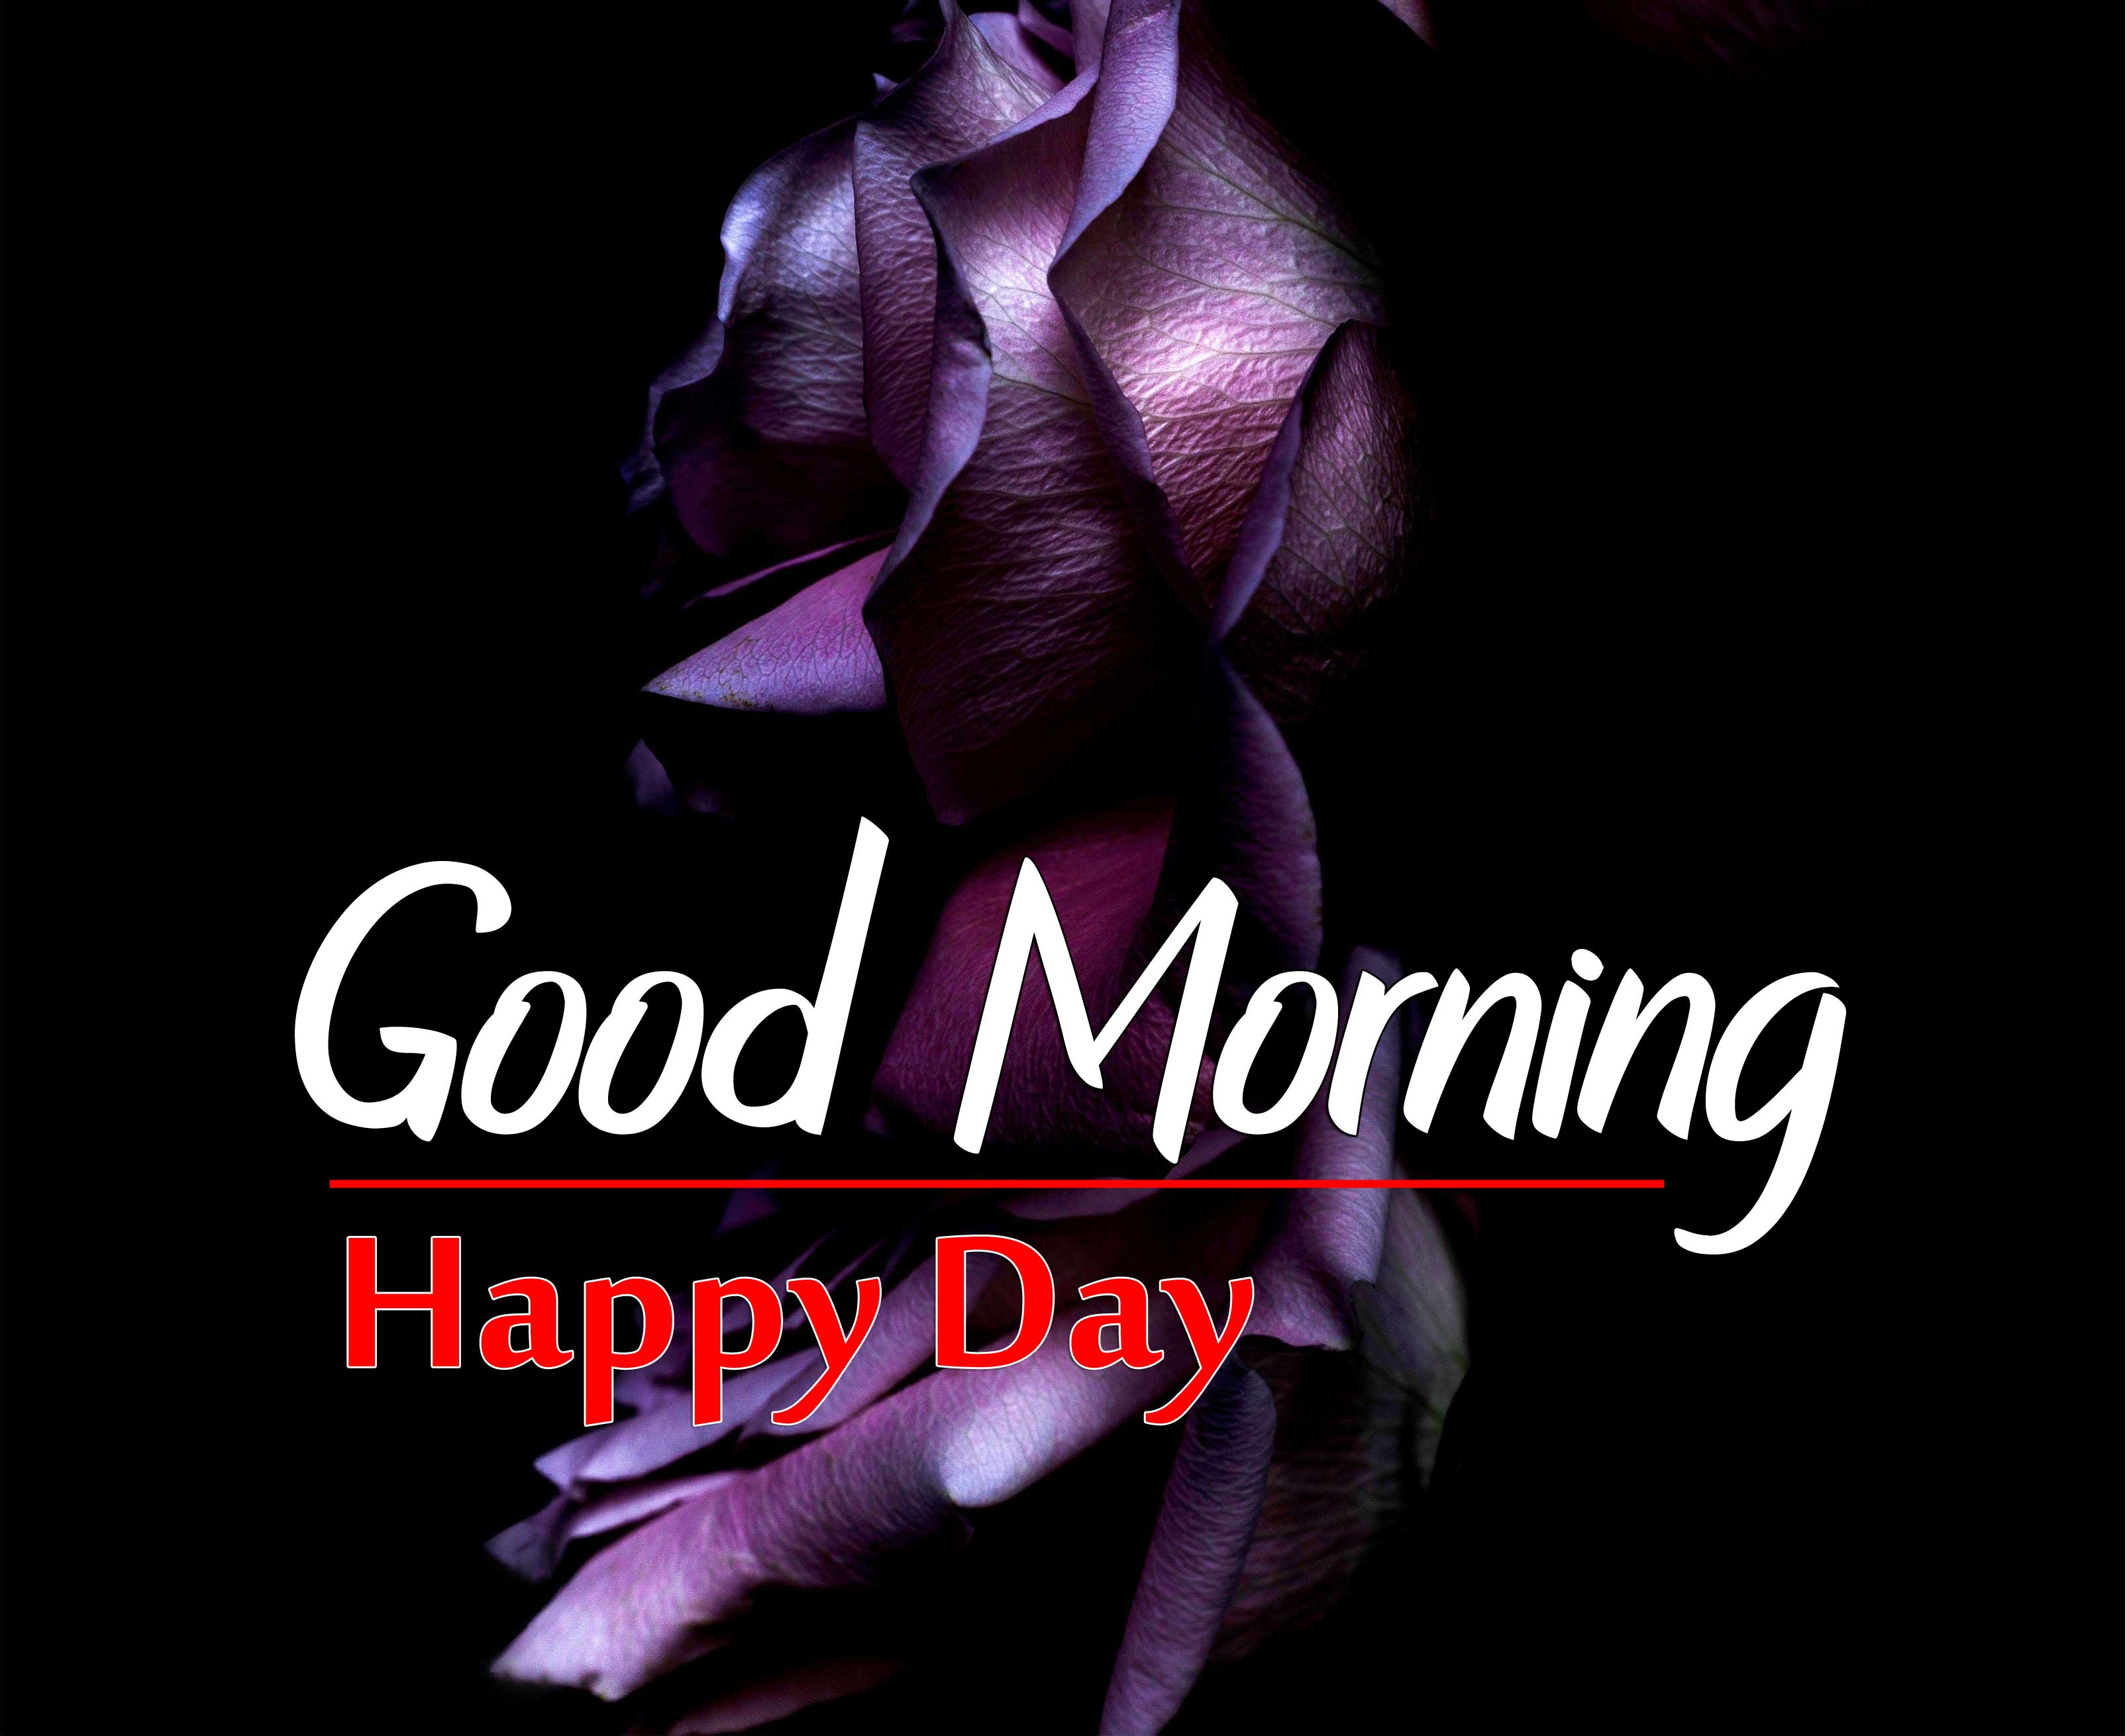 98+ Best Good Morning Images Wallpaper Pictures list Here 2021 Download